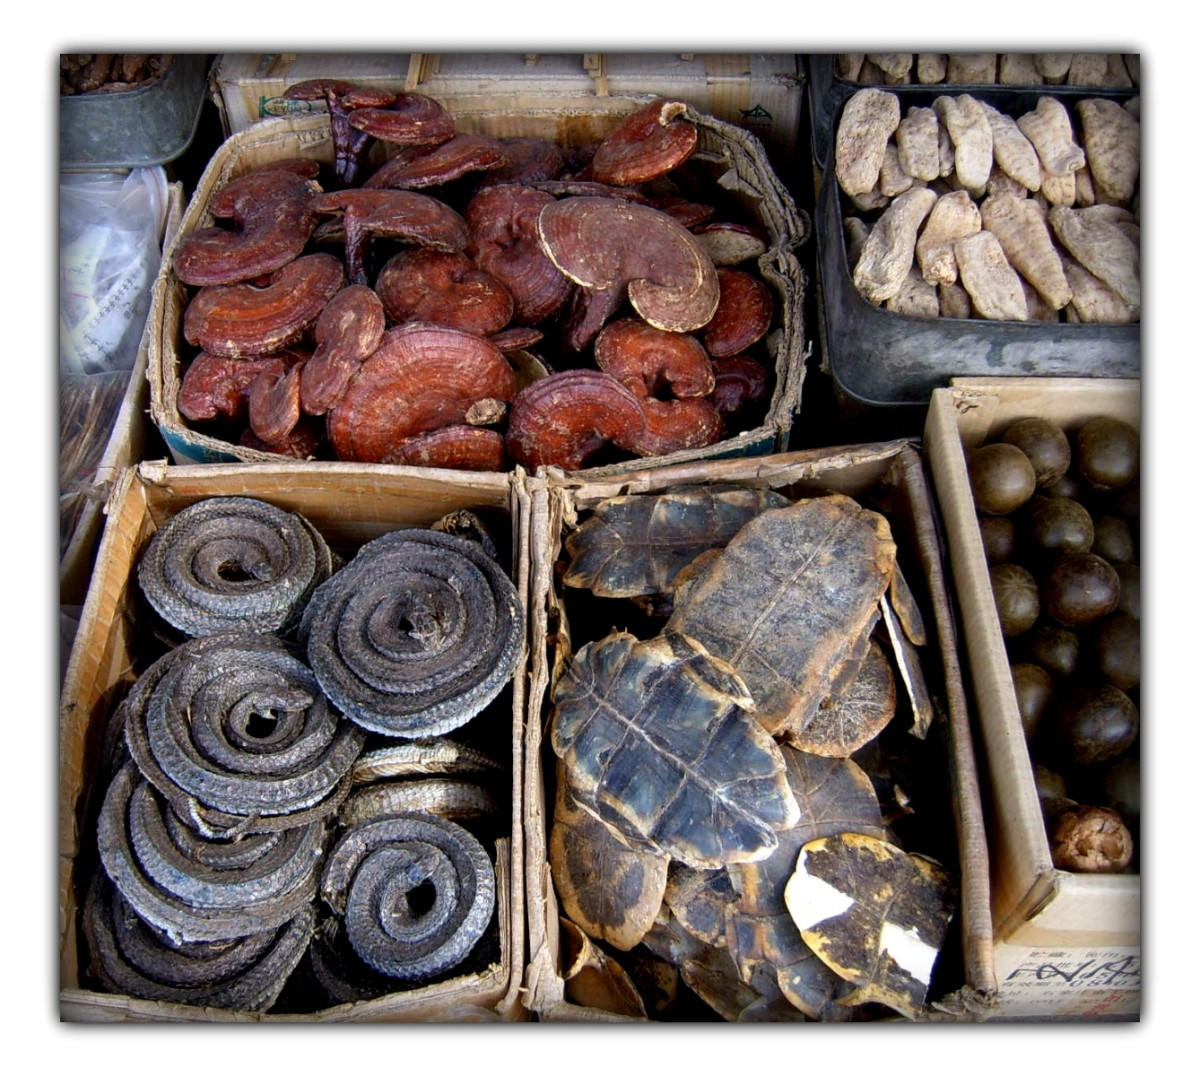 "Traditional Chinese medicine in Xi'an market, clockwise from top left corner: dried Lingzhi (lit. ""spirit mushrooms""), ginseng, Luo Han Guo, turtle shell underbelly (plastron), and dried curled snakes."